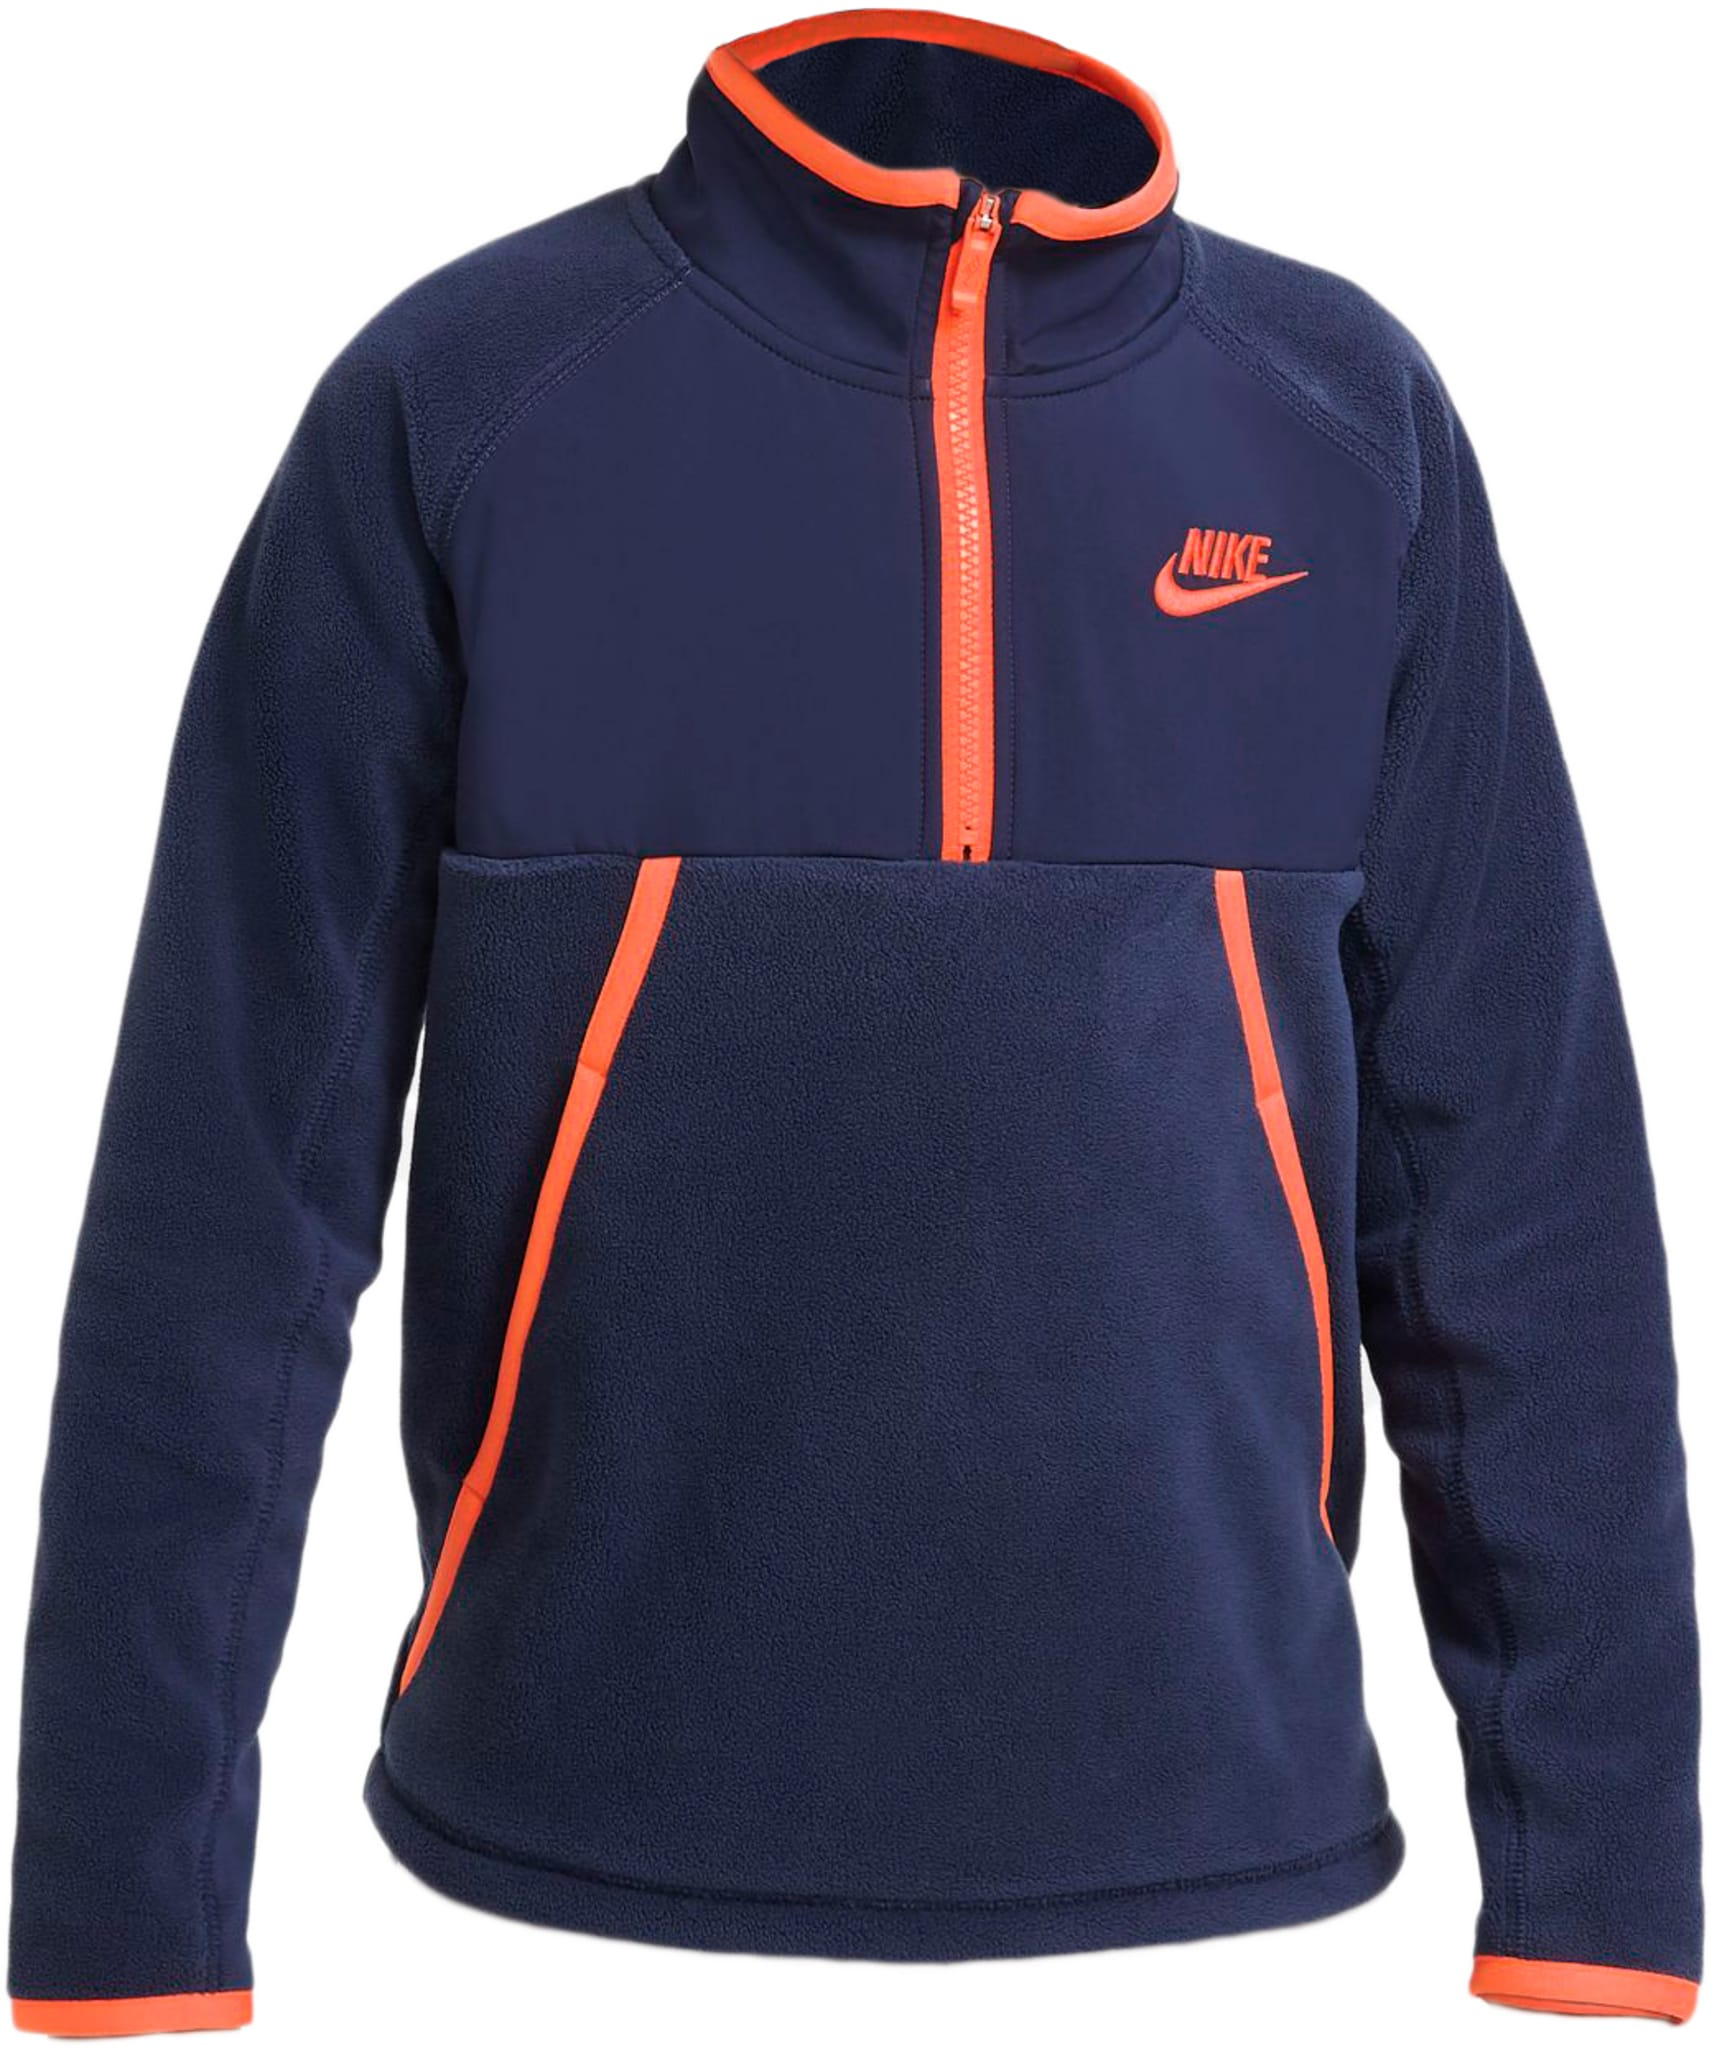 Boys' Fleece Zip Top